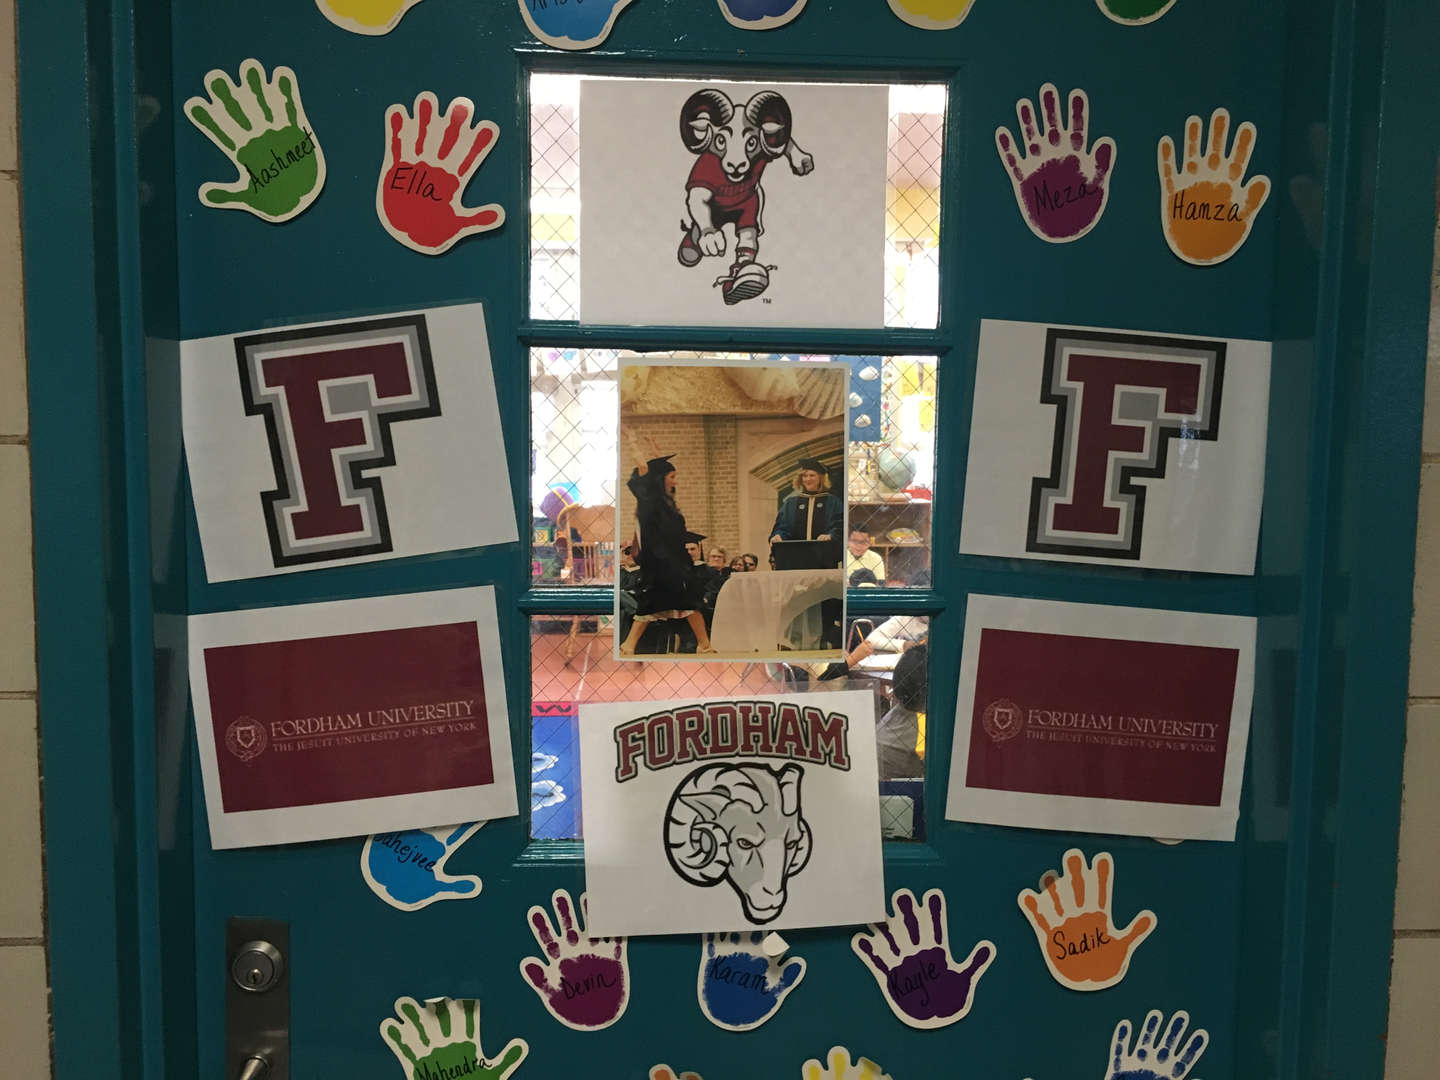 Fordham University logo and lettermark decorating a door